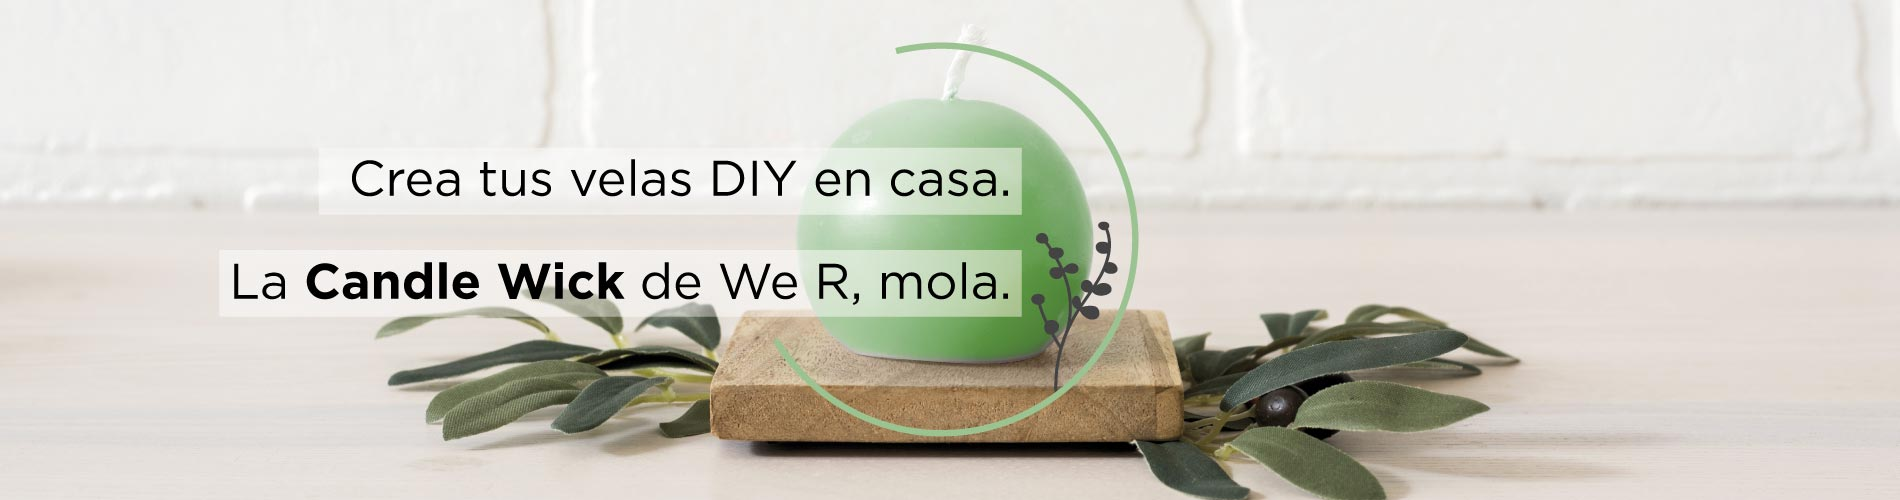 Velas DIY con la Candle Wick de We R